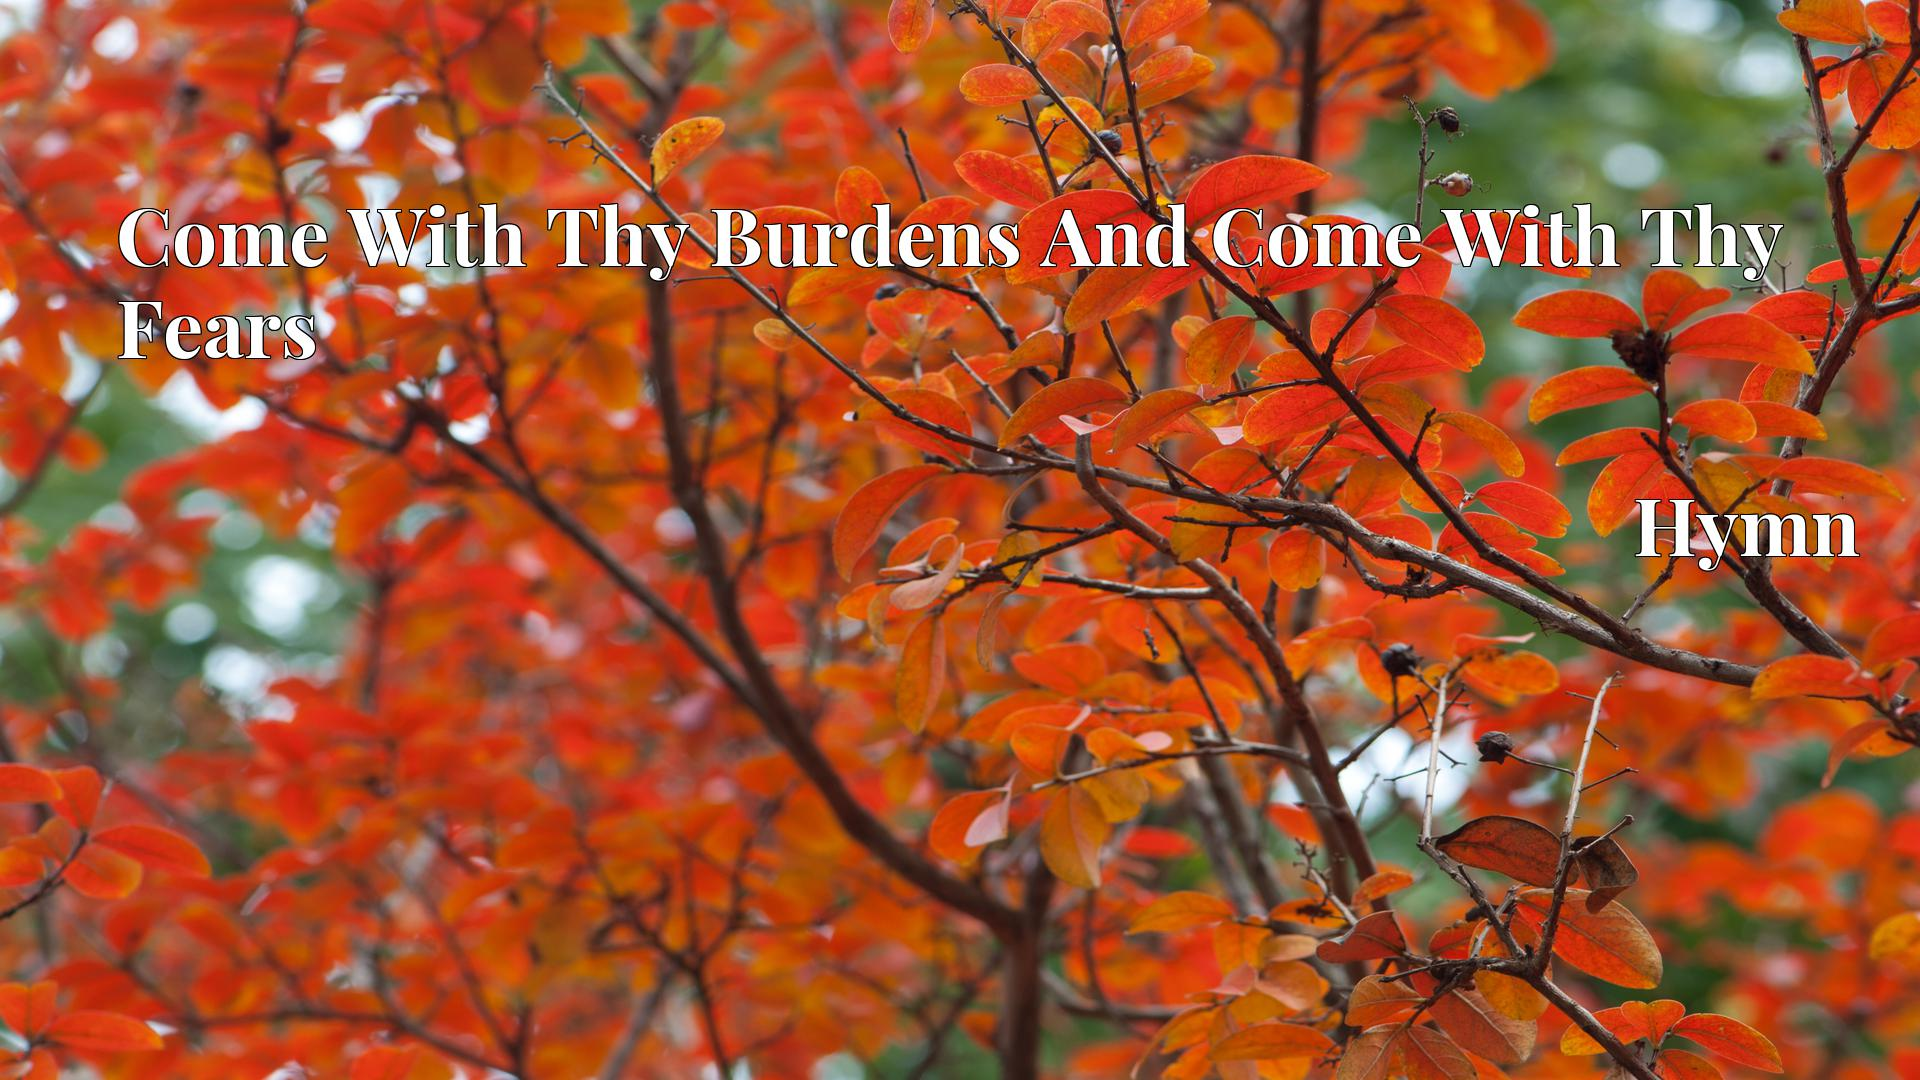 Come With Thy Burdens And Come With Thy Fears - Hymn